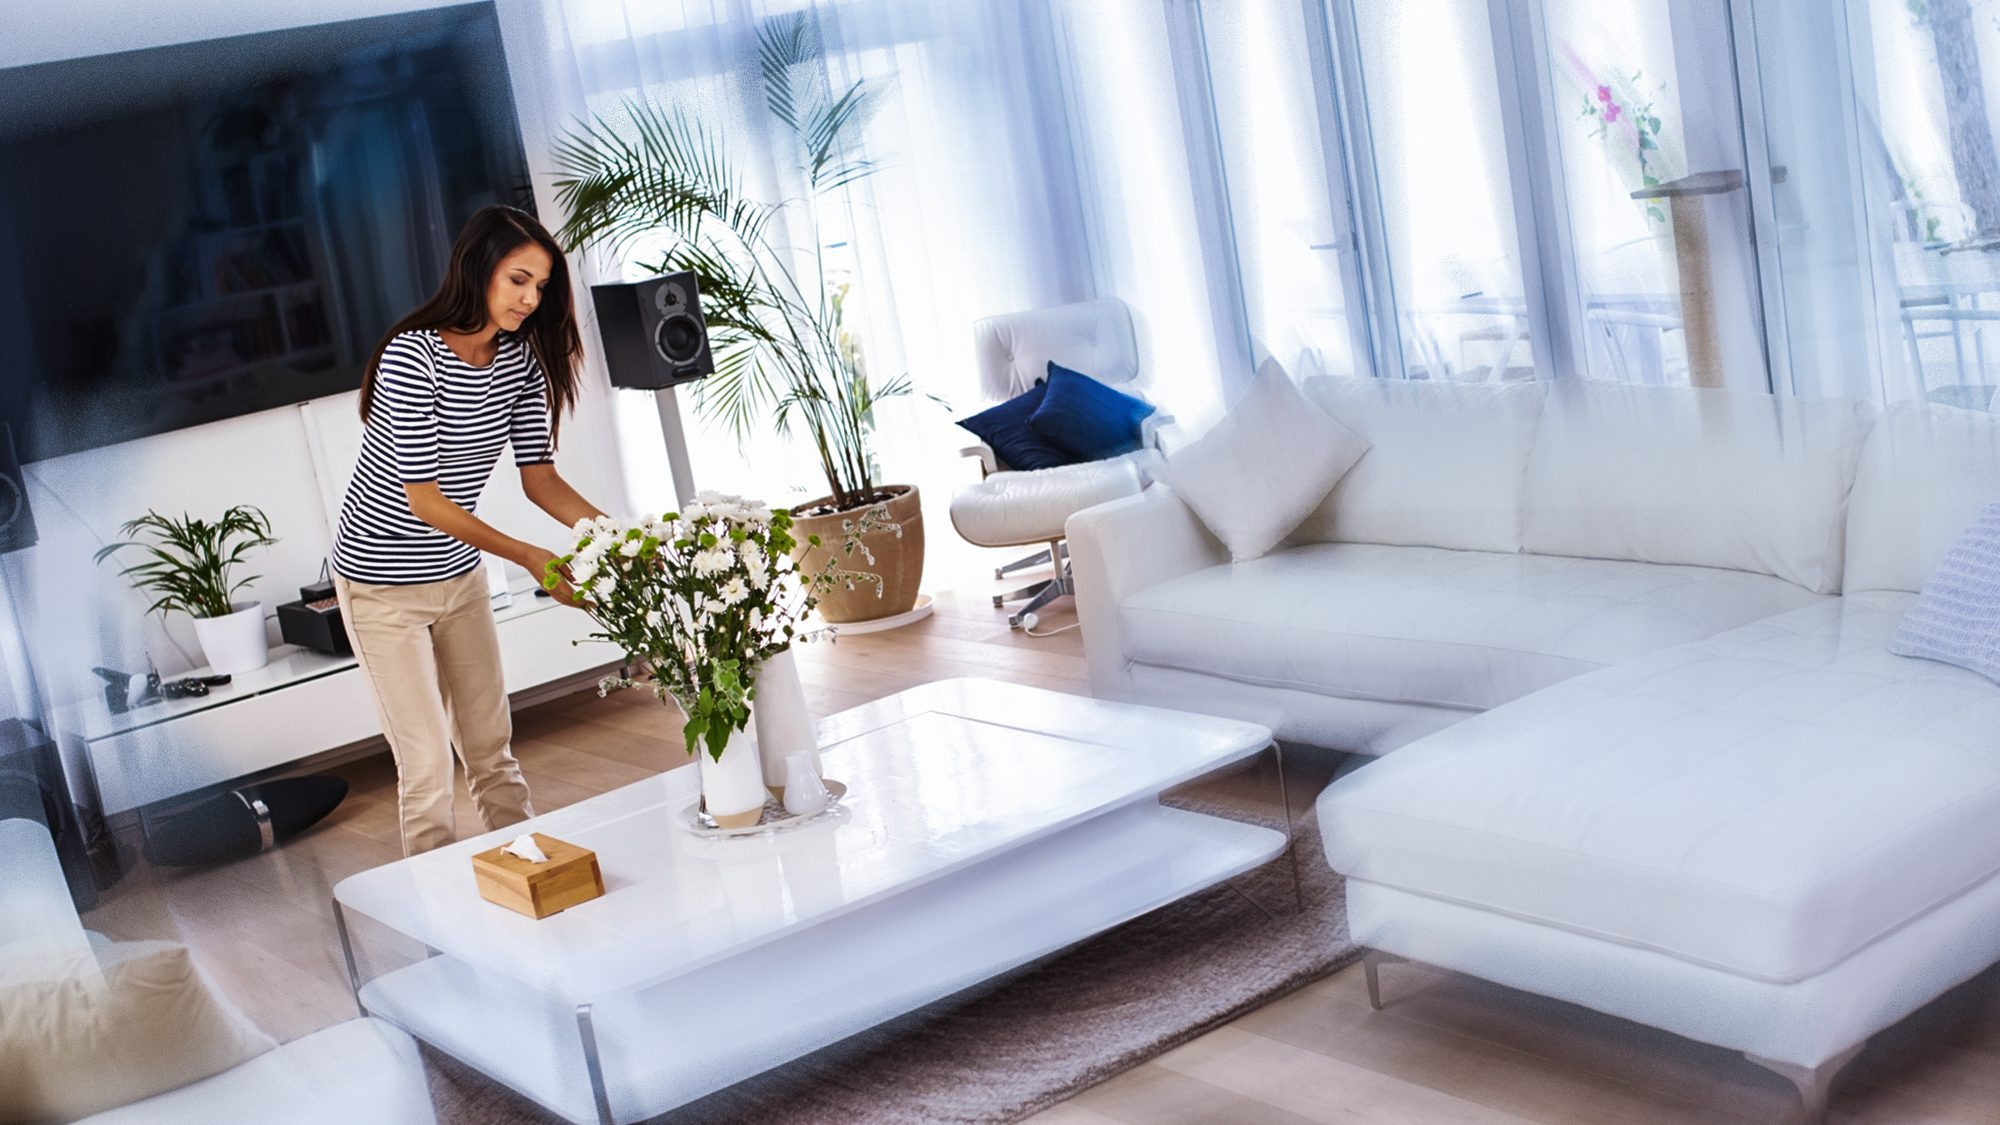 Home Staging in a Hurry: Tricks That take under 5 minutes (or 10, or an hour) to pull off